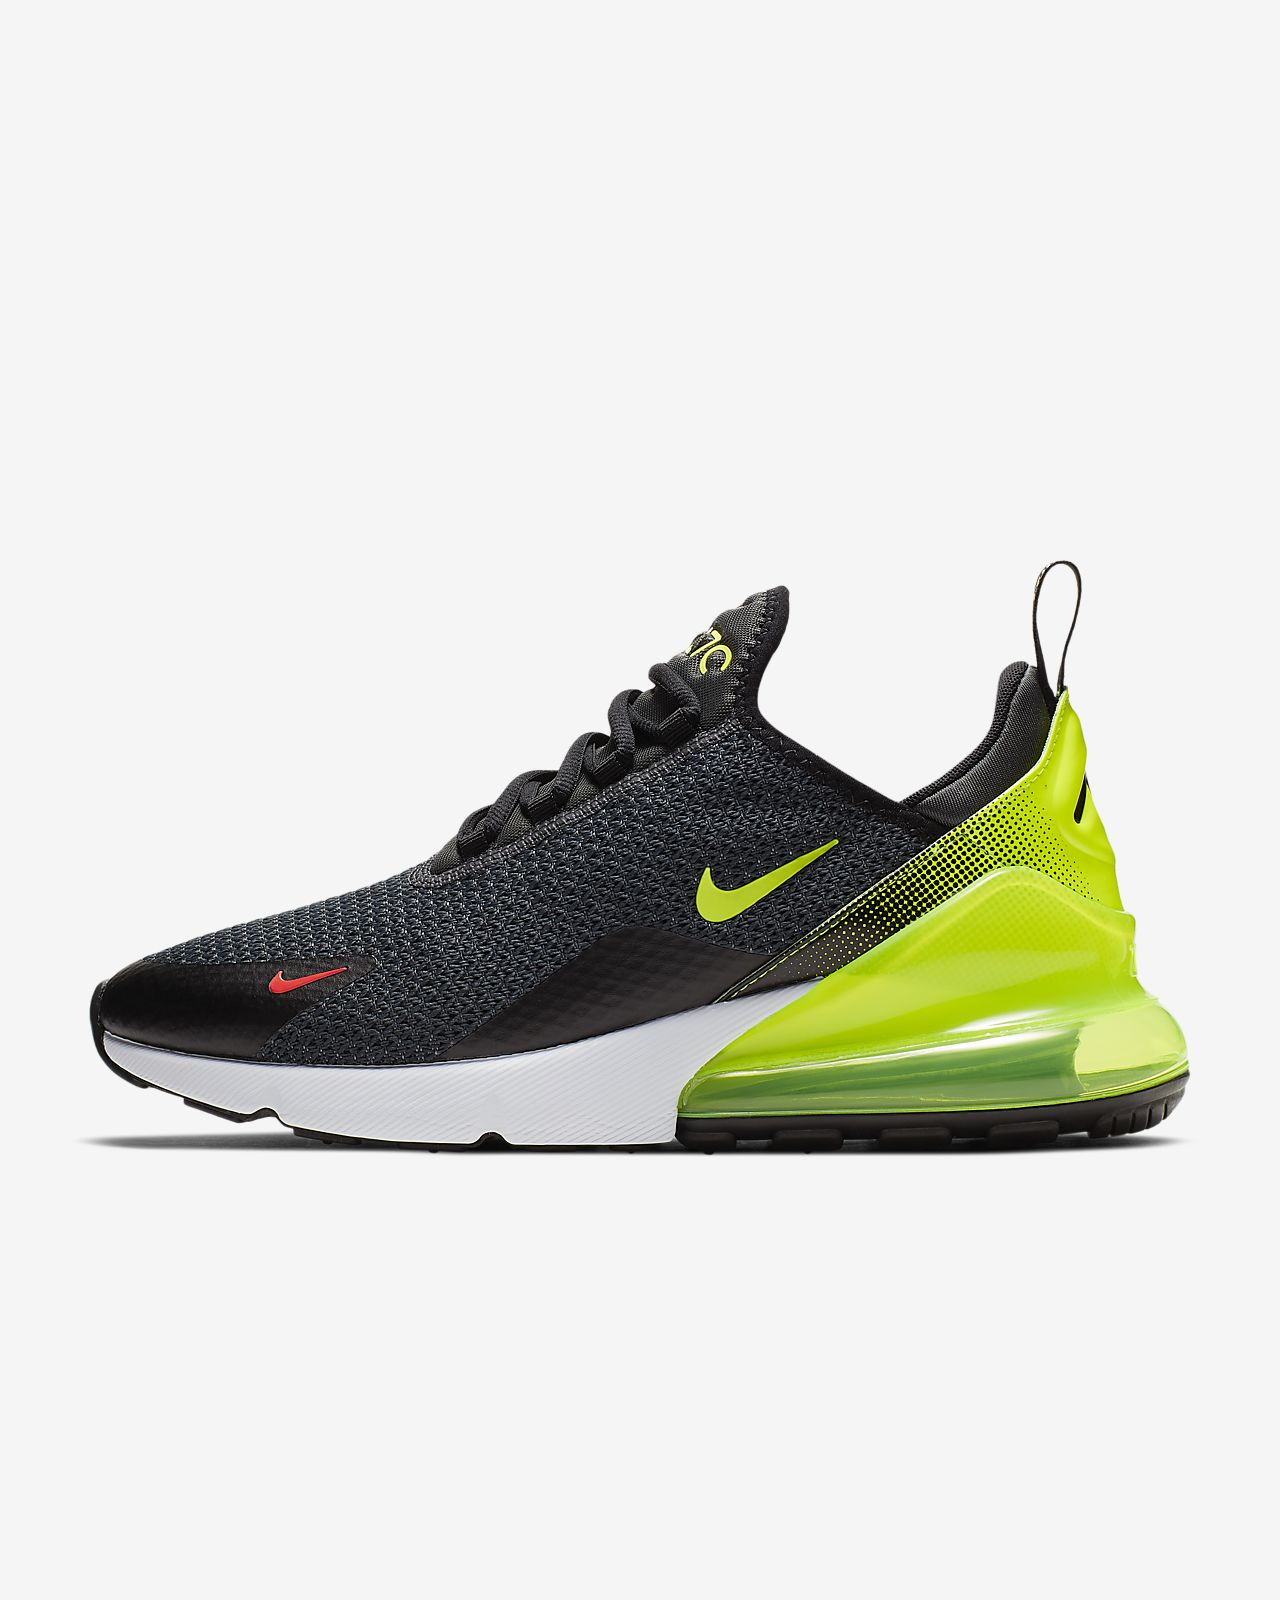 dfa4f5ccca23a Nike Air Max 270 SE Men s Shoe. Nike.com